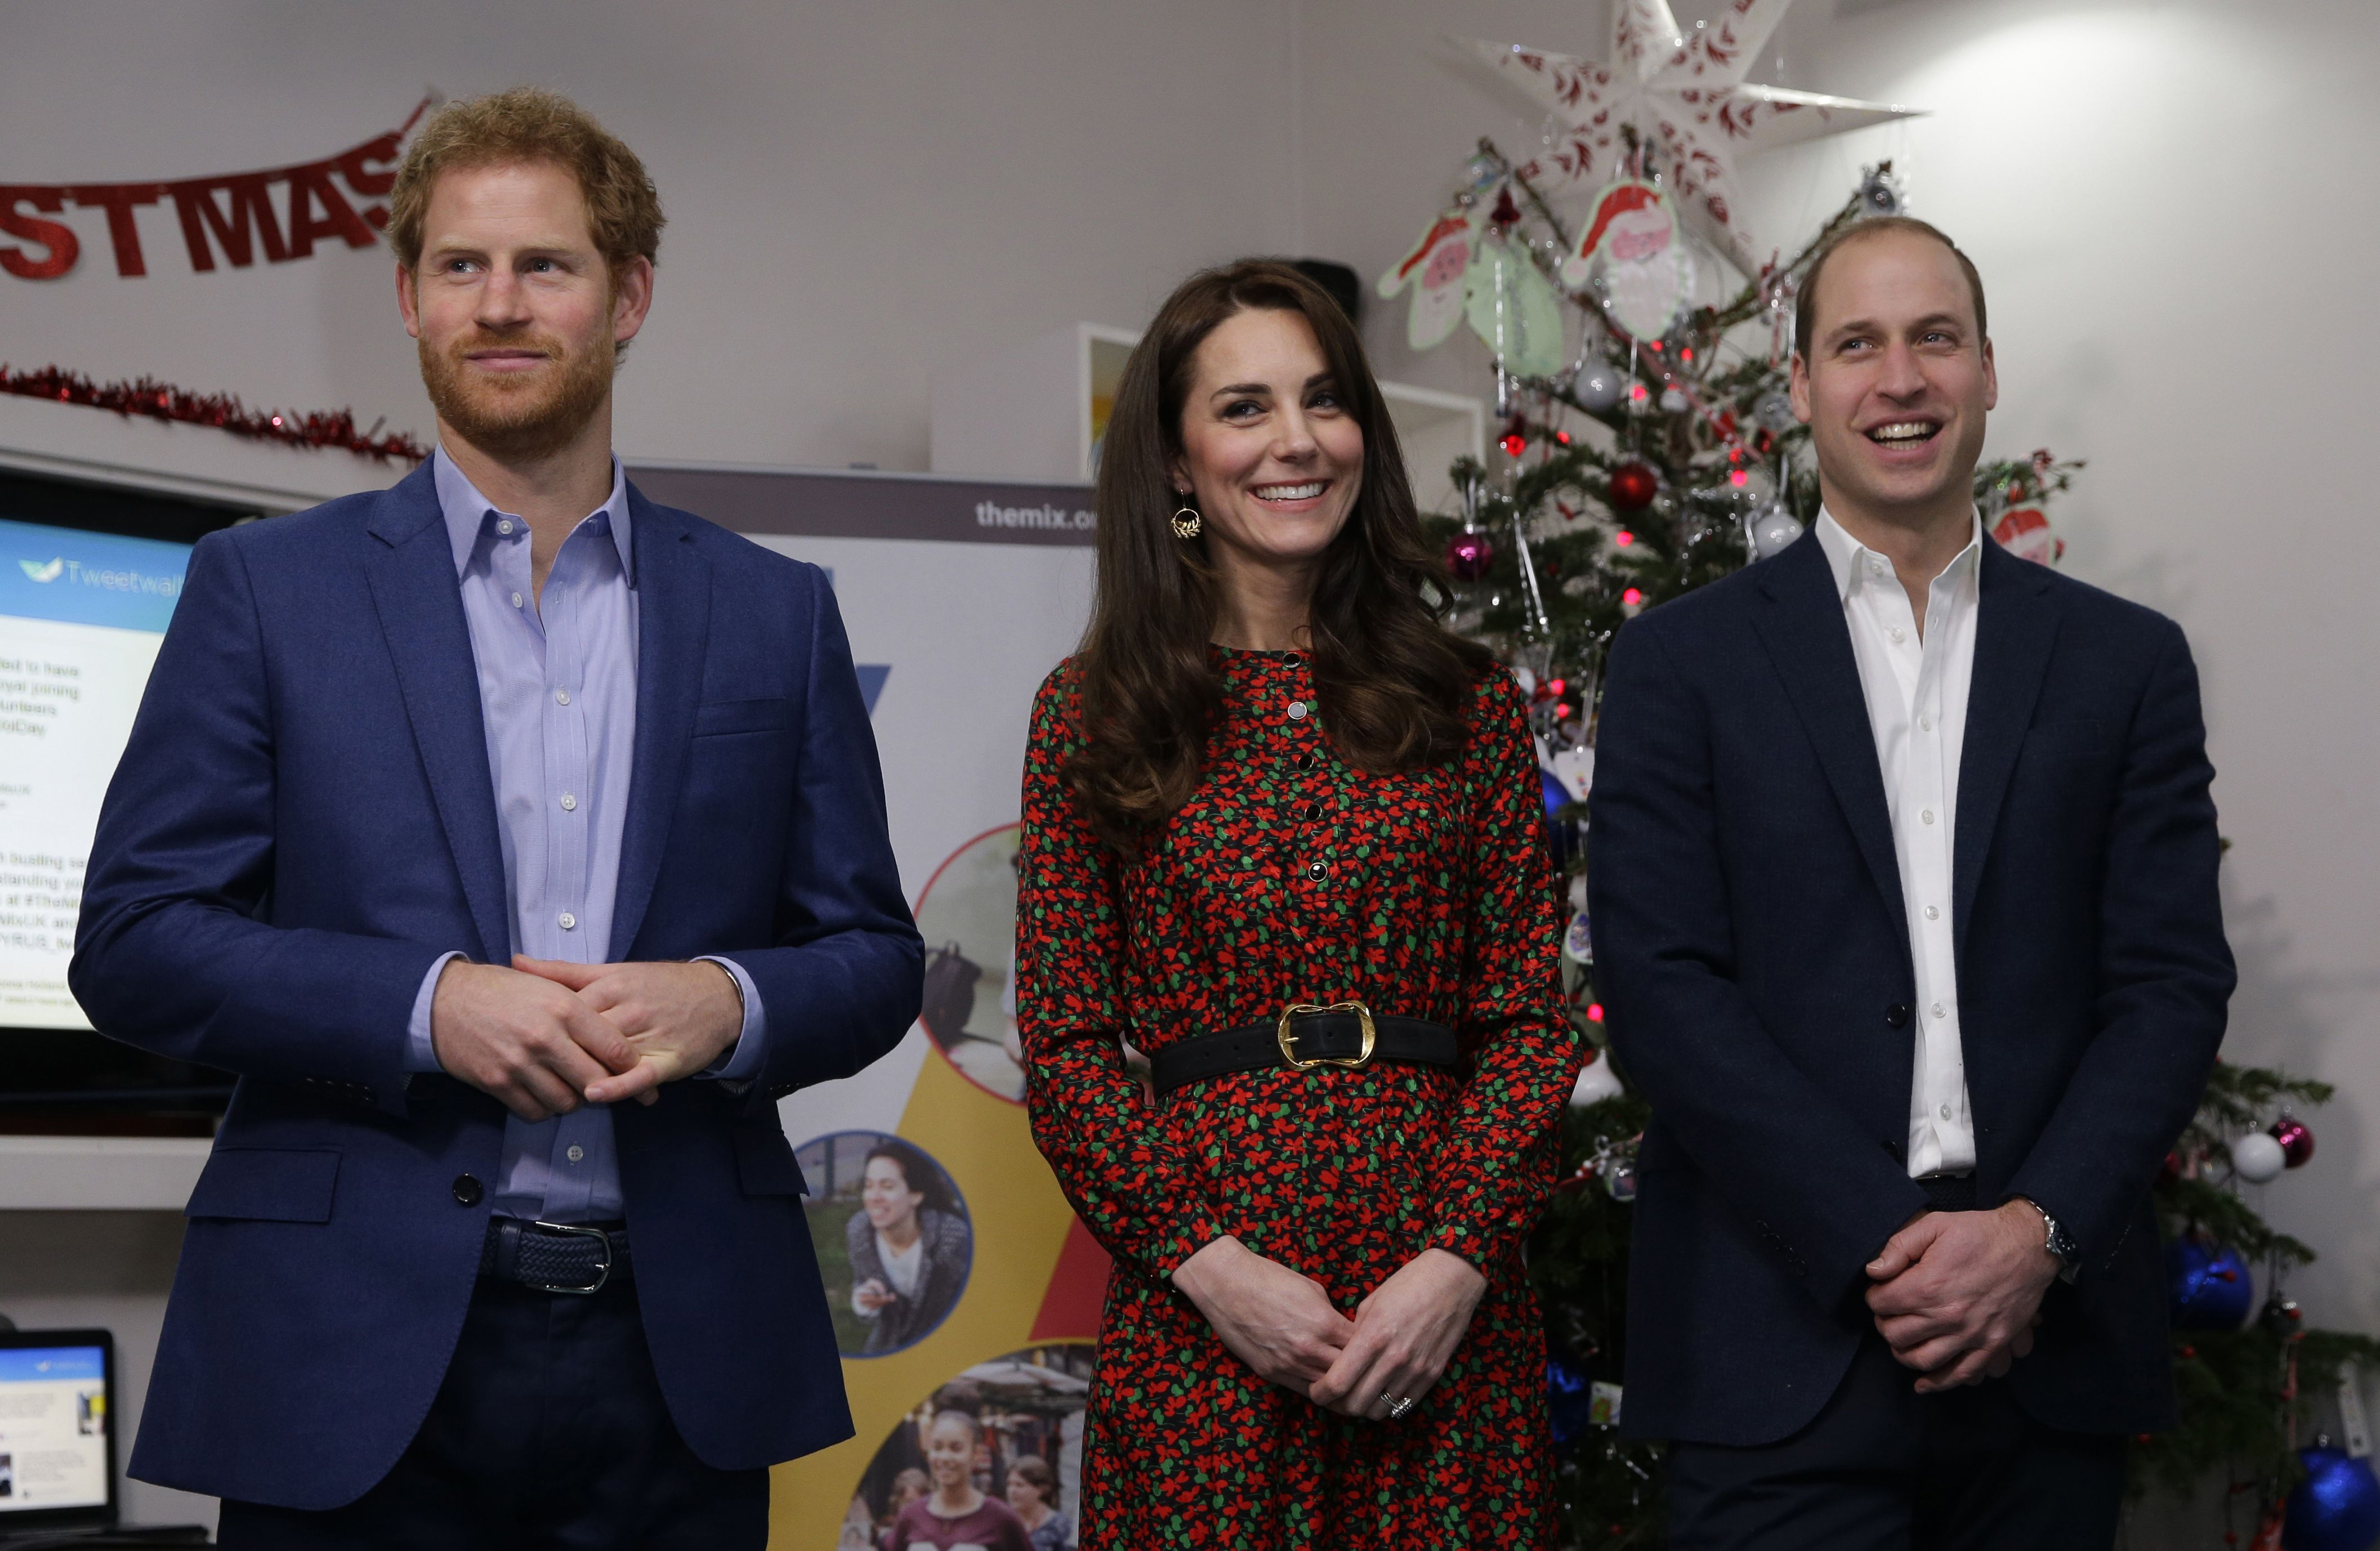 Prince Harry Kate Middleton Prince William charity